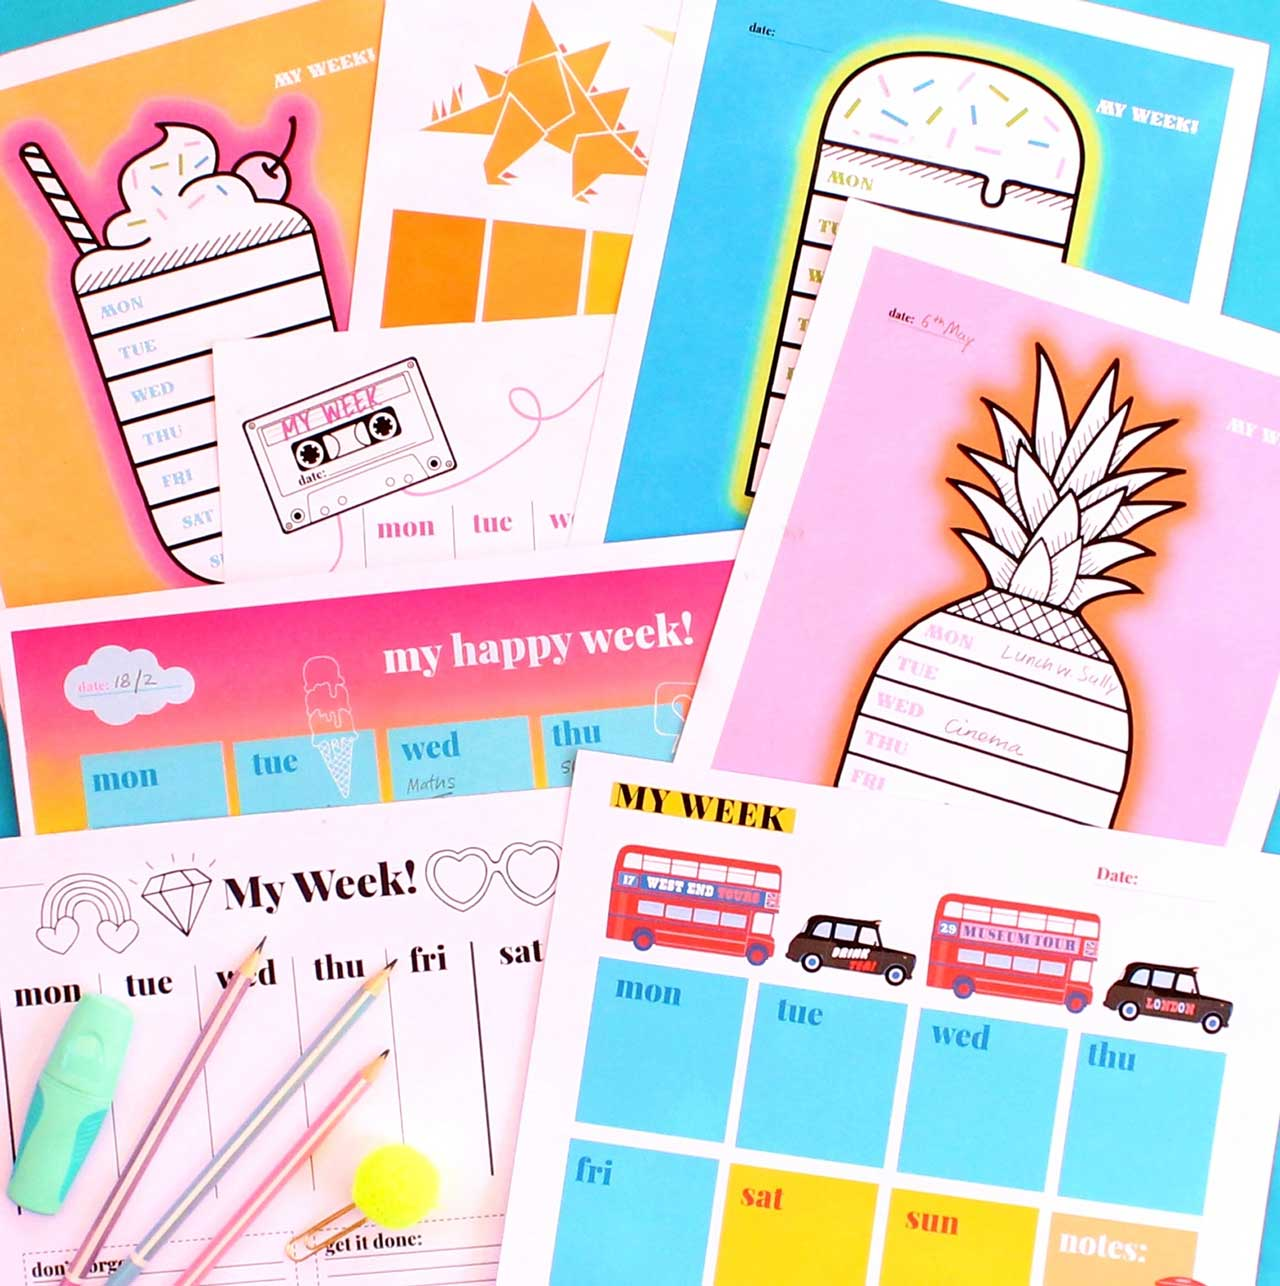 graphic about Cute Weekly Planner Printable known as Printable weekly planners: 9 PDF weekly planner styles